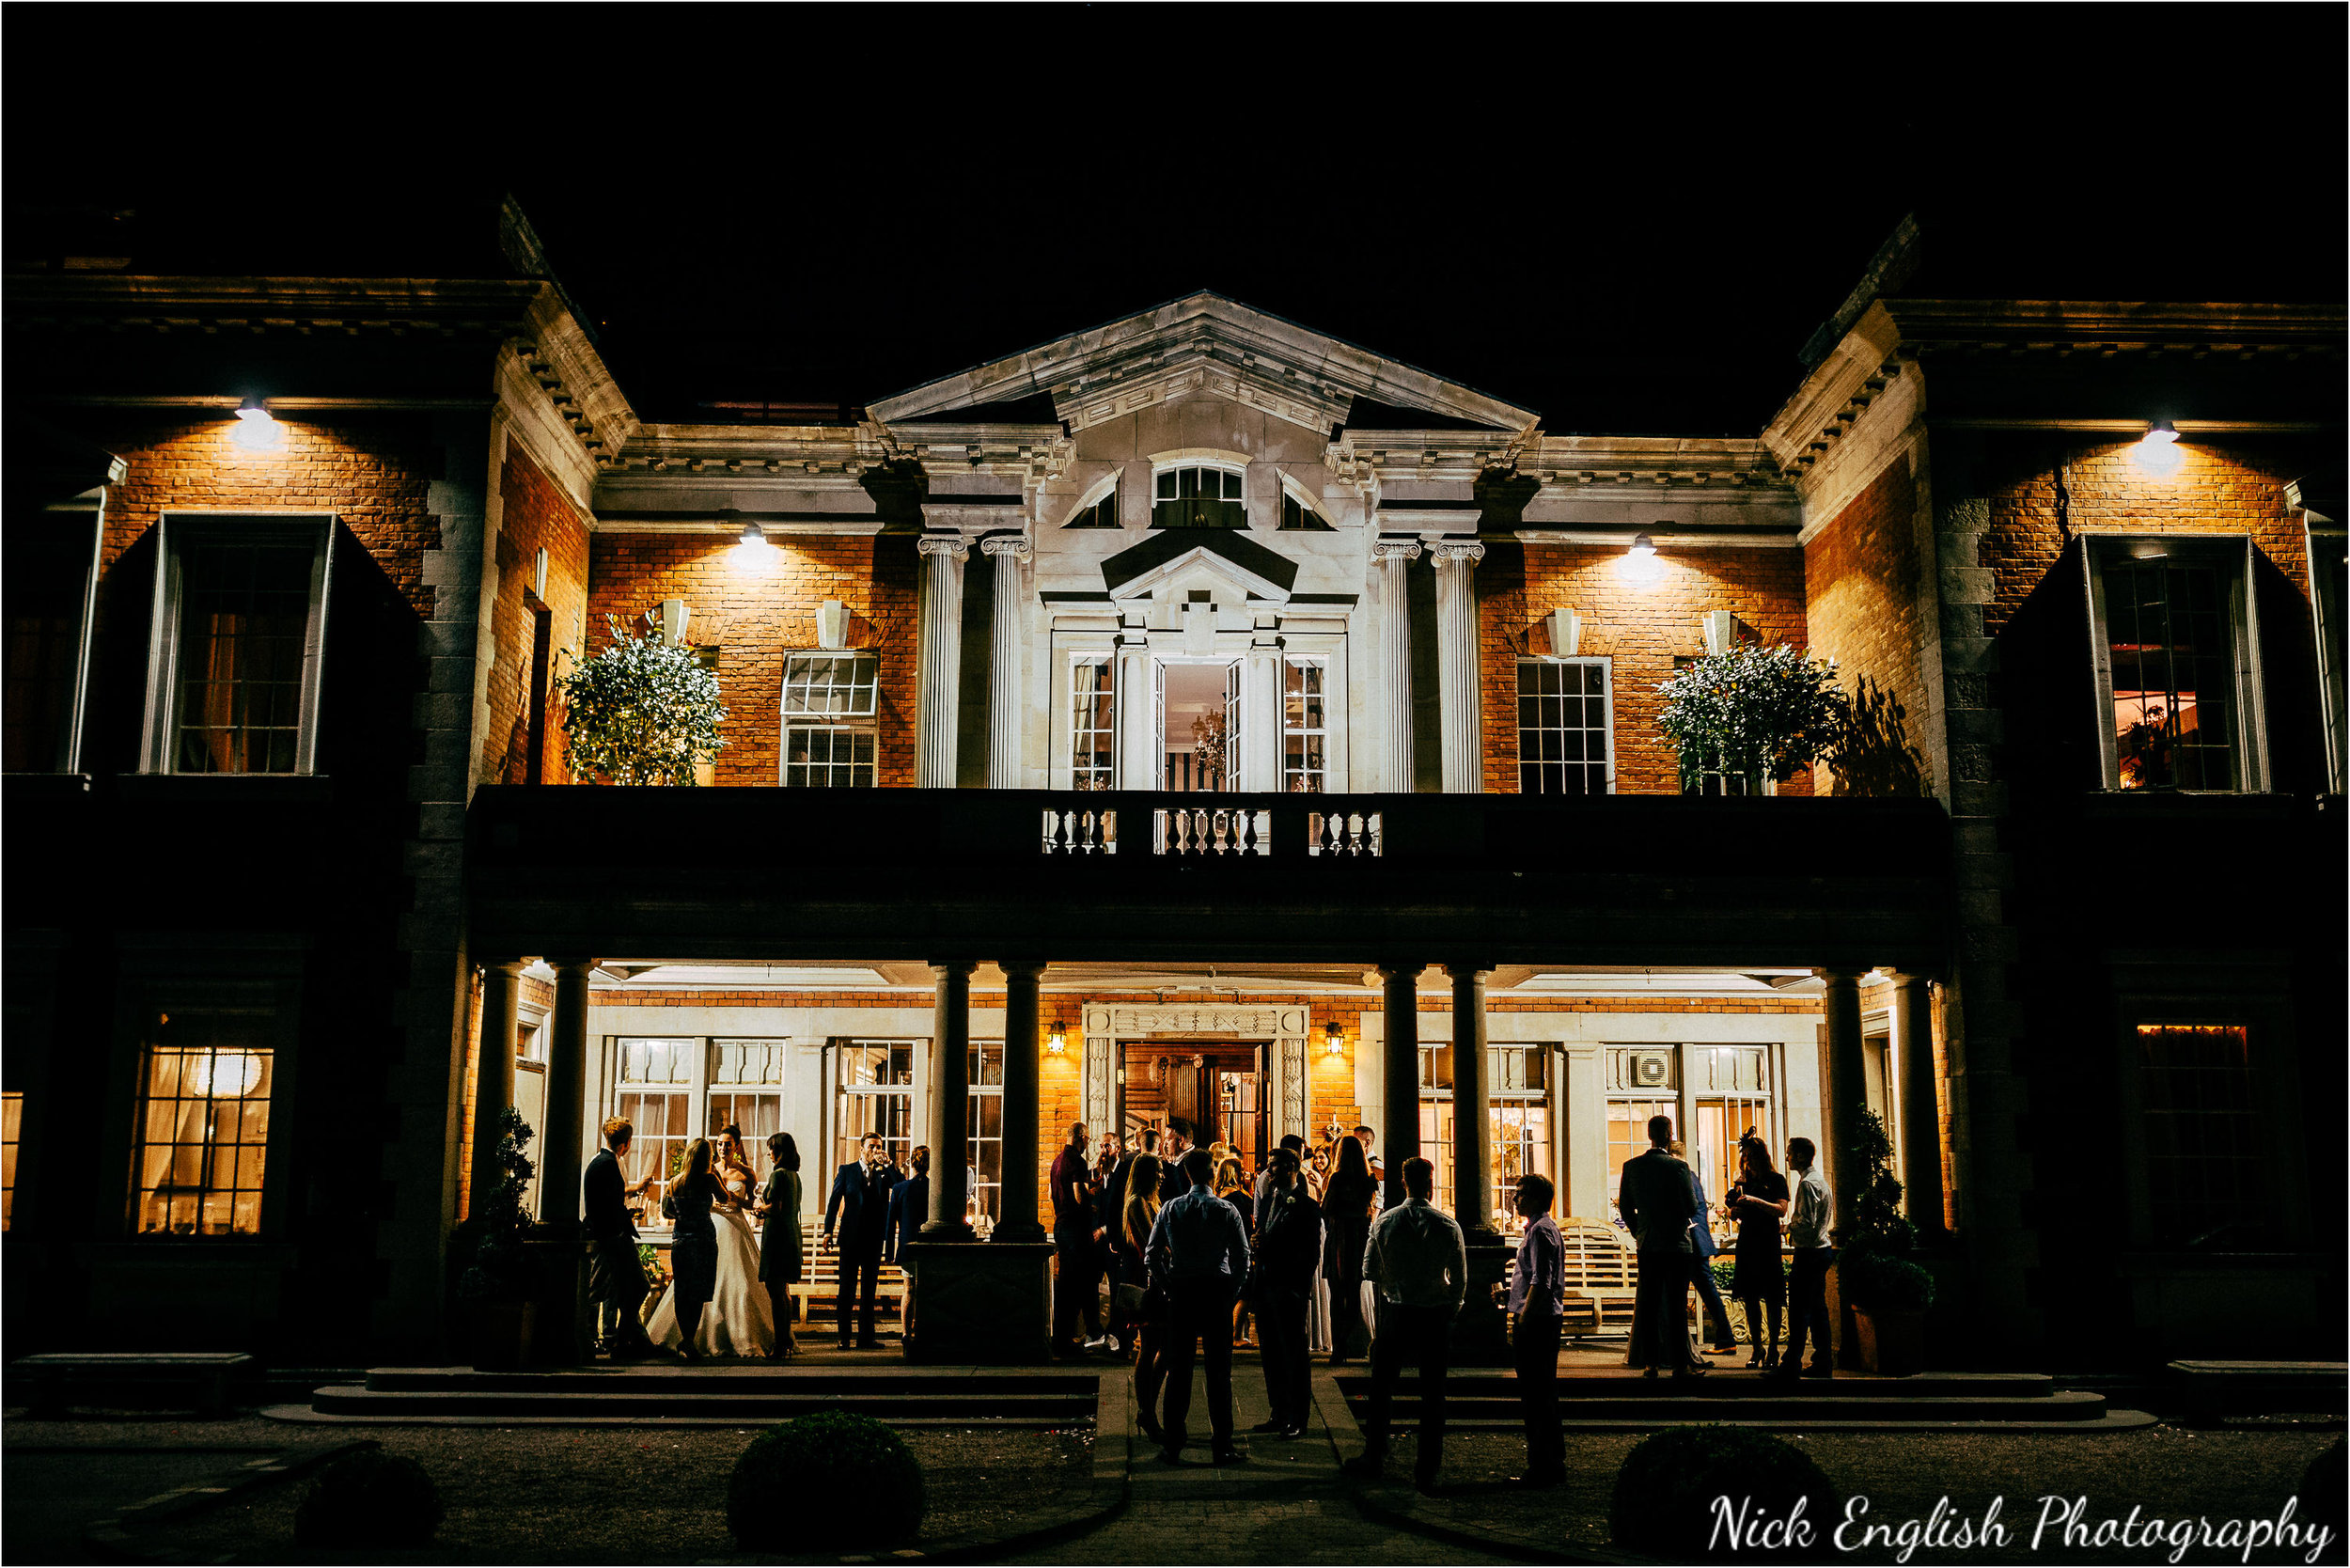 Eaves_Hall_Wedding_Photographs_Nick_English_Photography-249.jpg